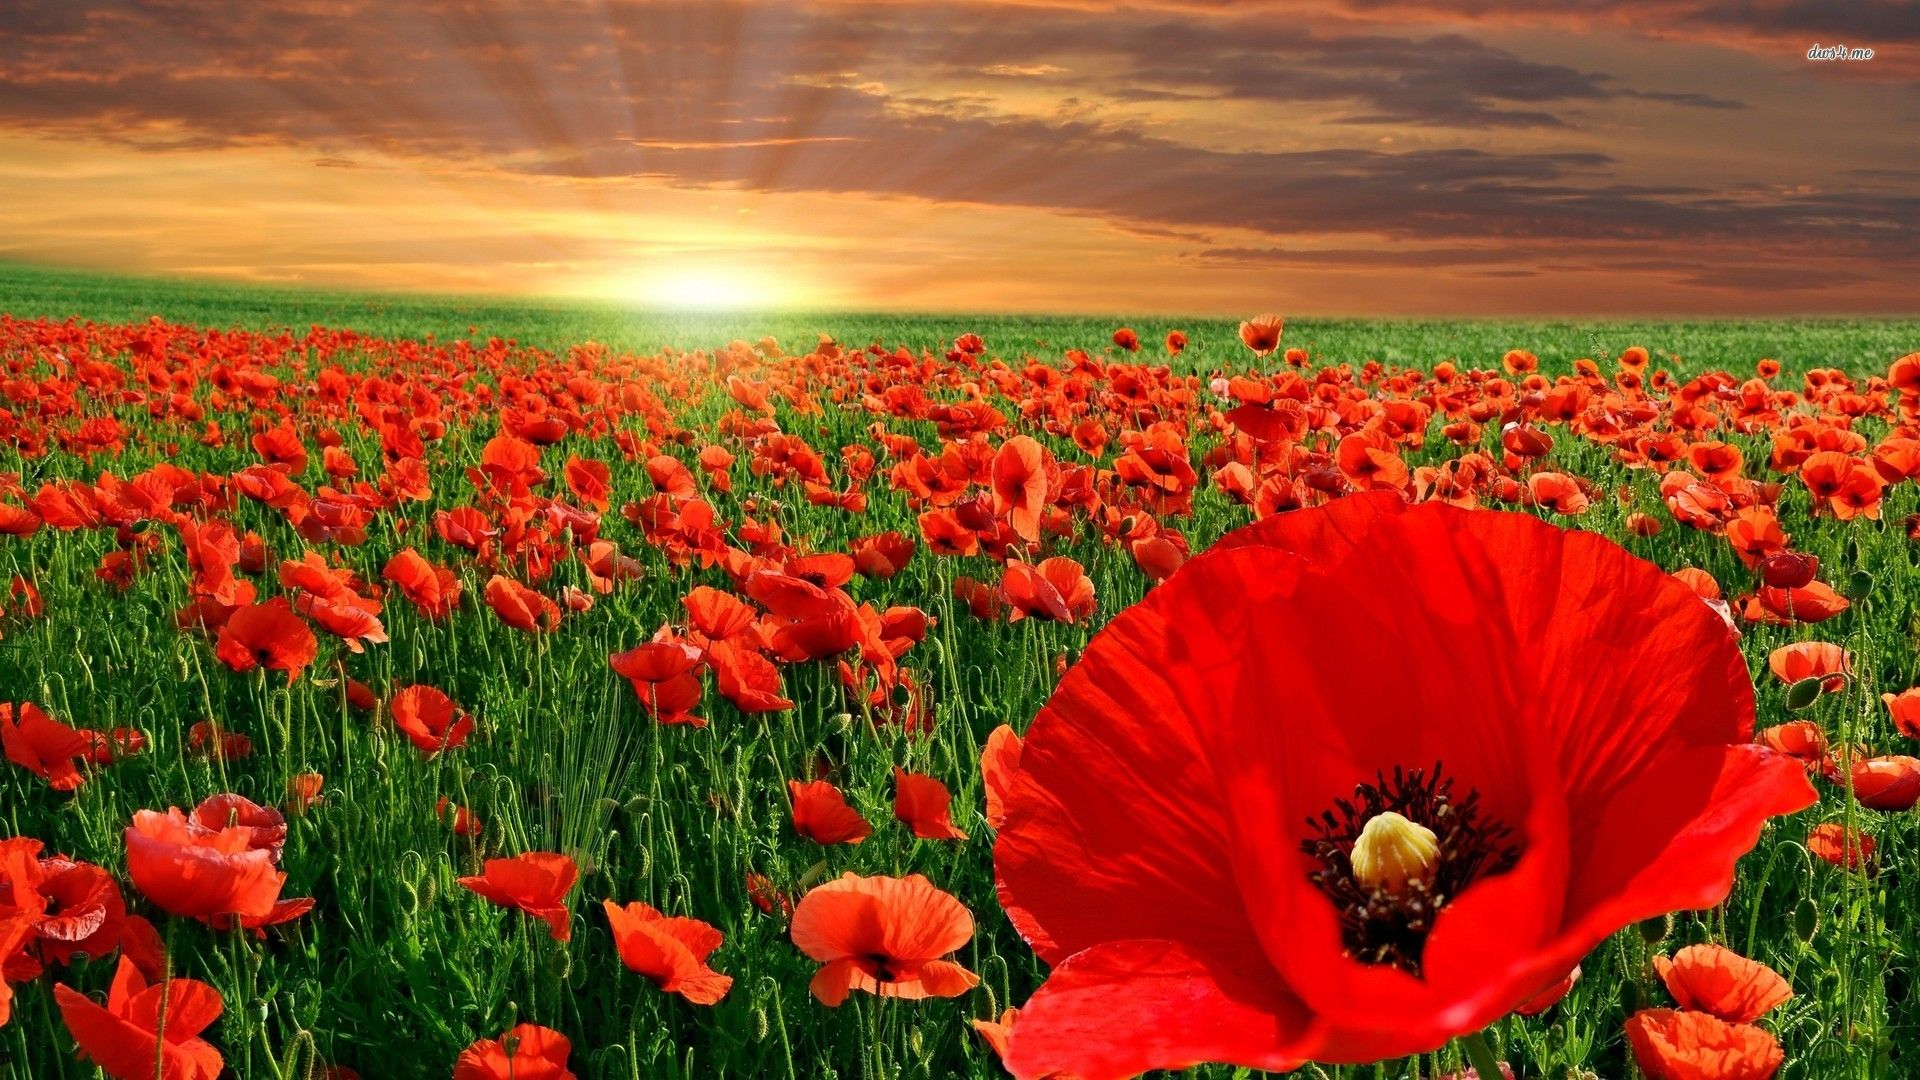 Red Poppy Flower Wallpaper | Backyard | Pinterest | Flower wallpaper ...